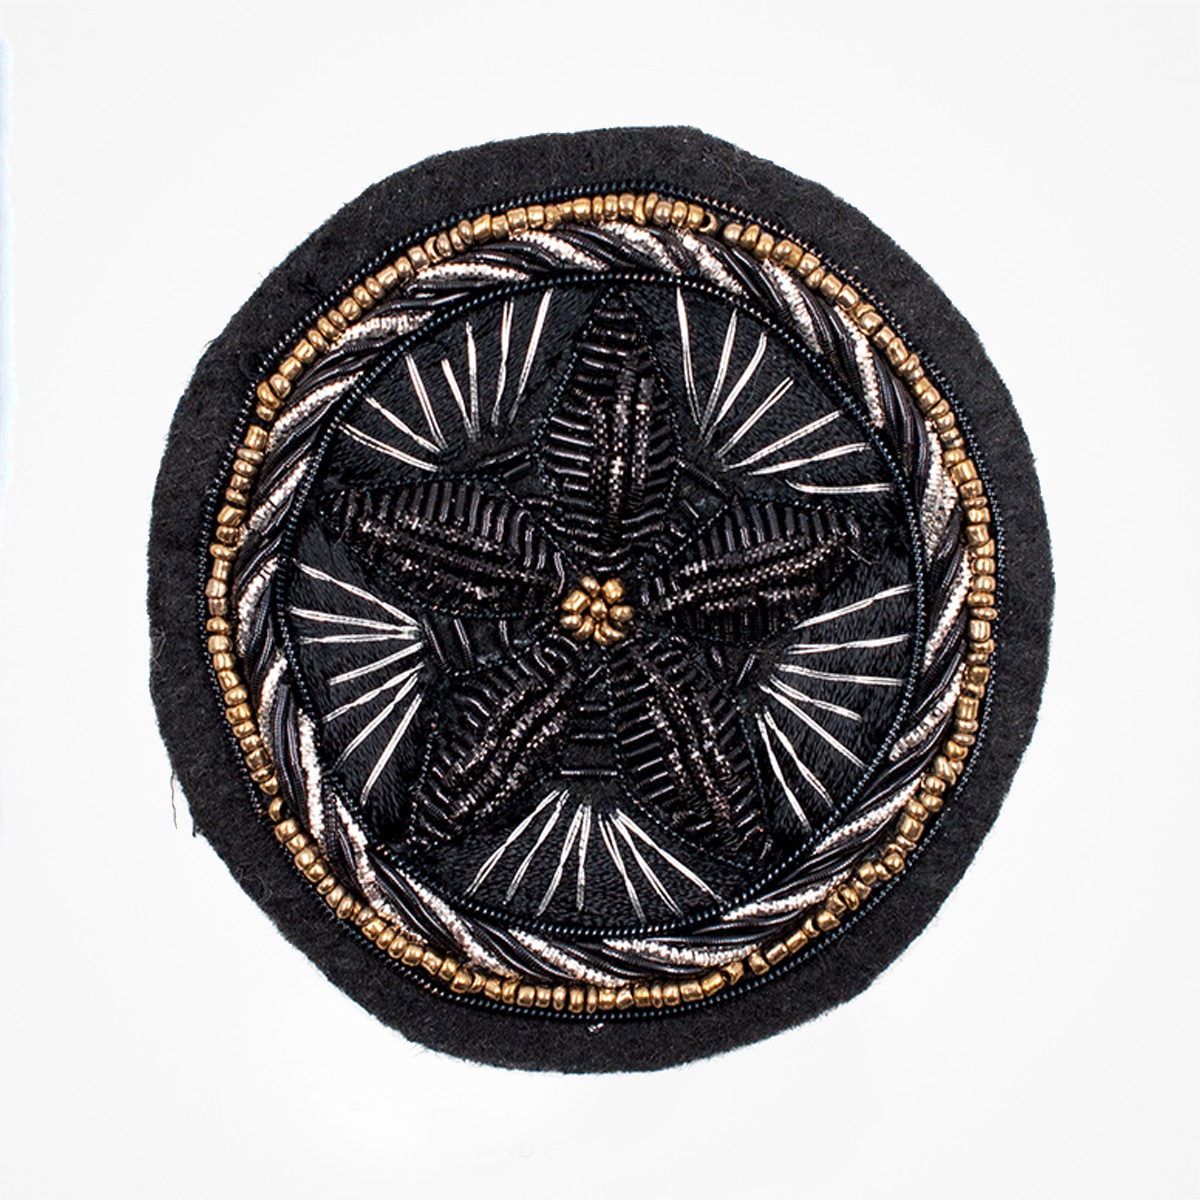 Qg - 3486 - Fashionable 3D embroidered look Made by skilled artisans Bullion wire and silk thread hand Stitched on Black color Felt Available in gold and silver colors Size = 65 mm height 65 mm width sew-on backing: Perfect for caps, sports jacket, leather jackets, blazer coat, Blazer Pocket, shirts uniforms, Accessories and many More Pin backing: easy to removable 5